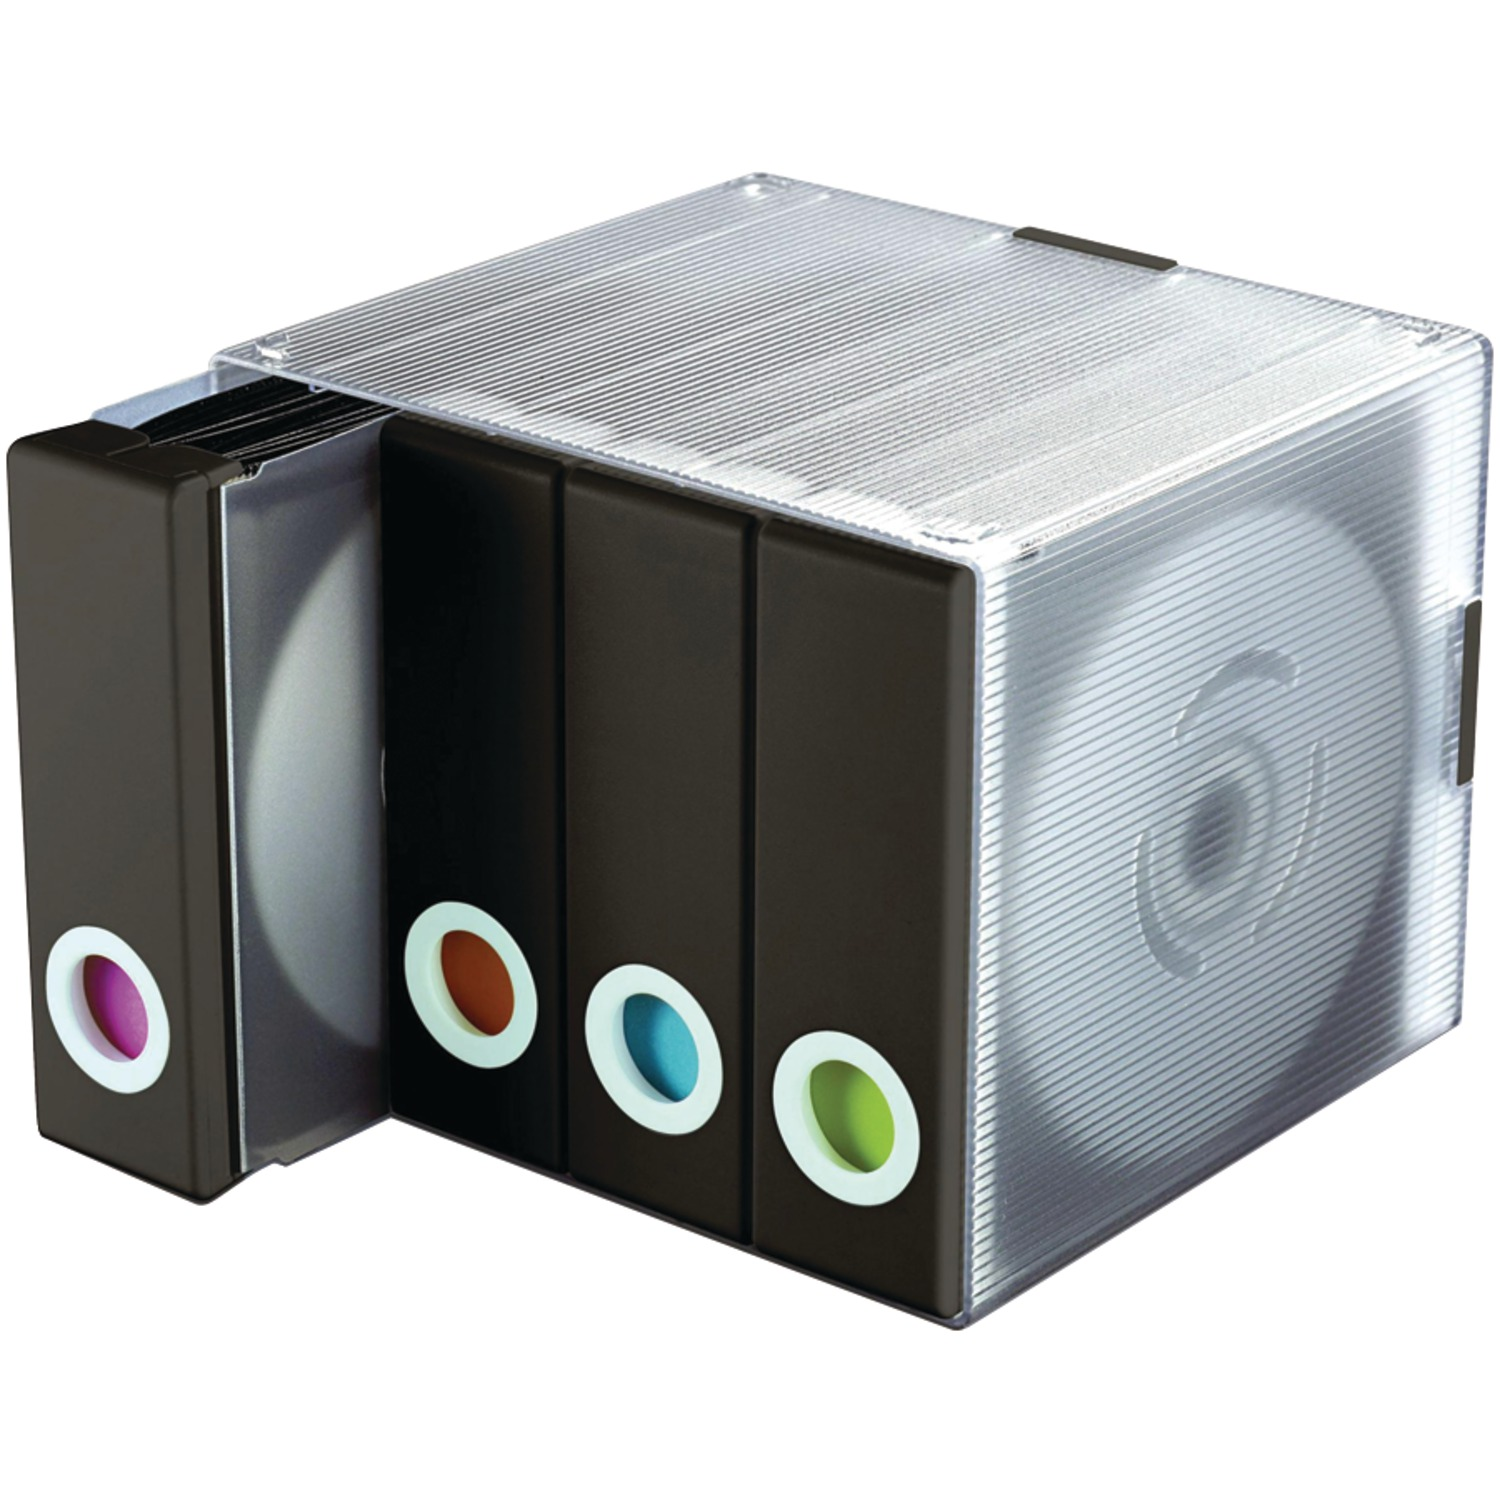 Atlantic Parade Stackable CD/ DVD Storage Organizer Cube (96 CDs/DVDs), Black